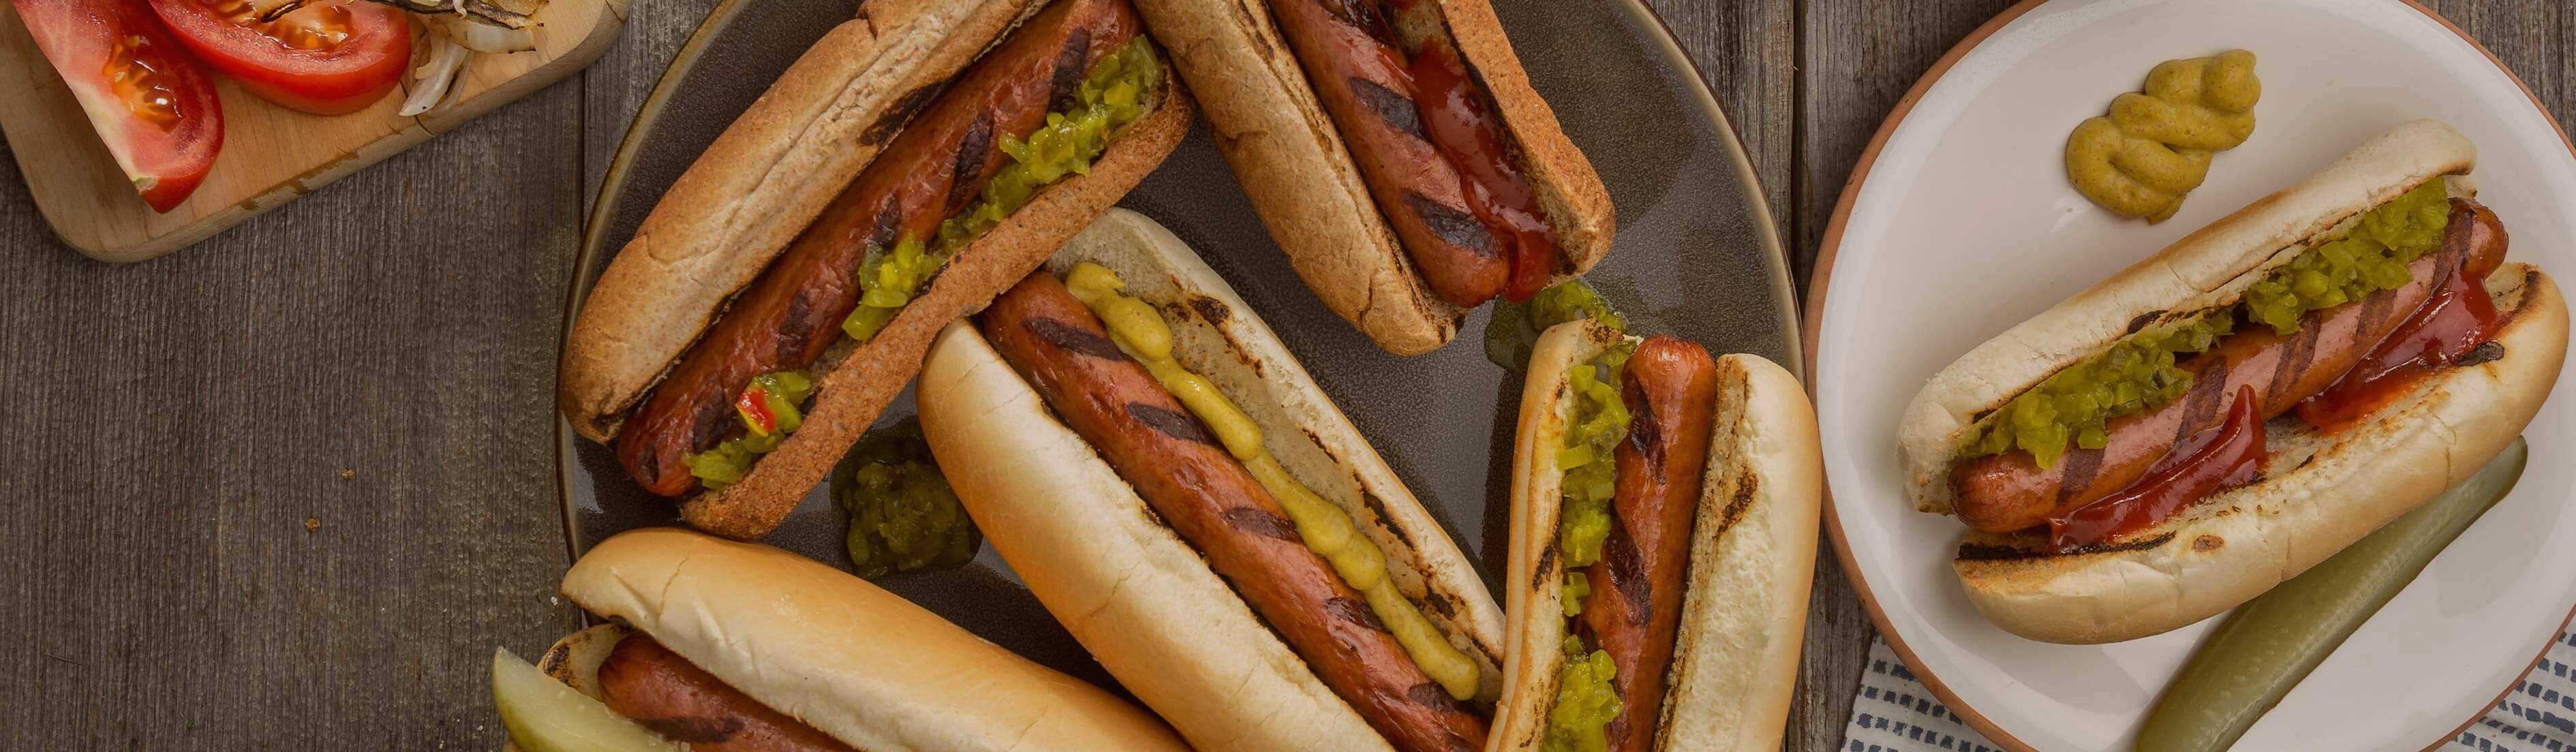 How To Season Hot Dogs On The Grill